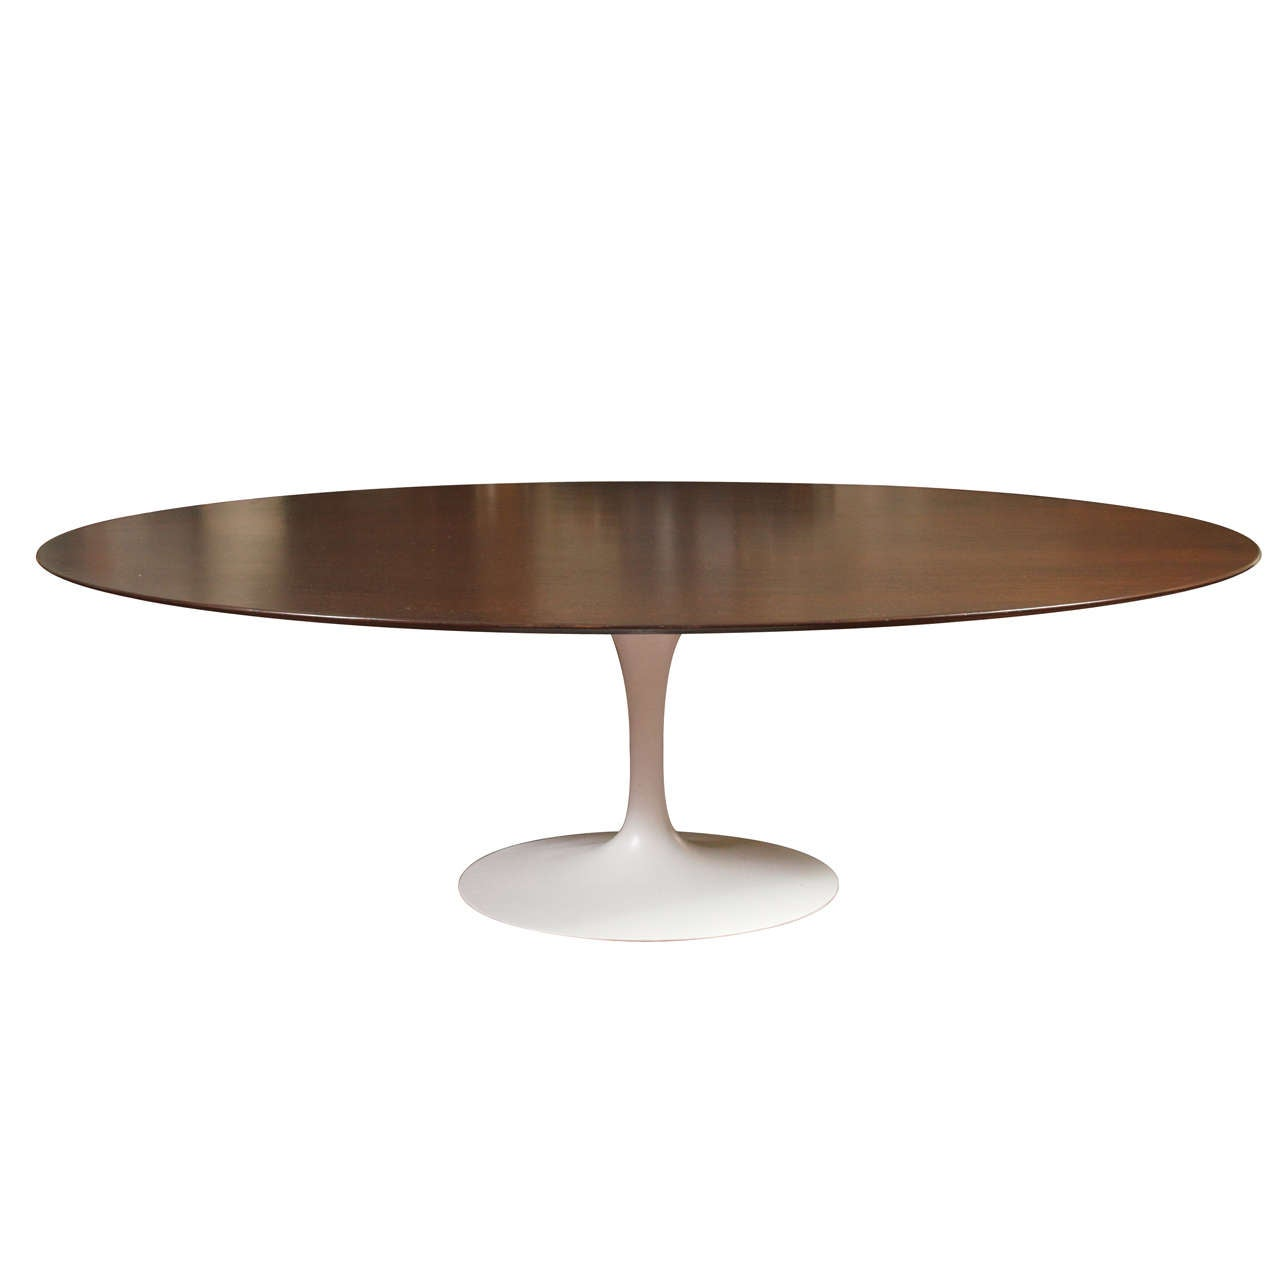 Knoll Associates Eero Saarinen Walnut Oval Dining Table At